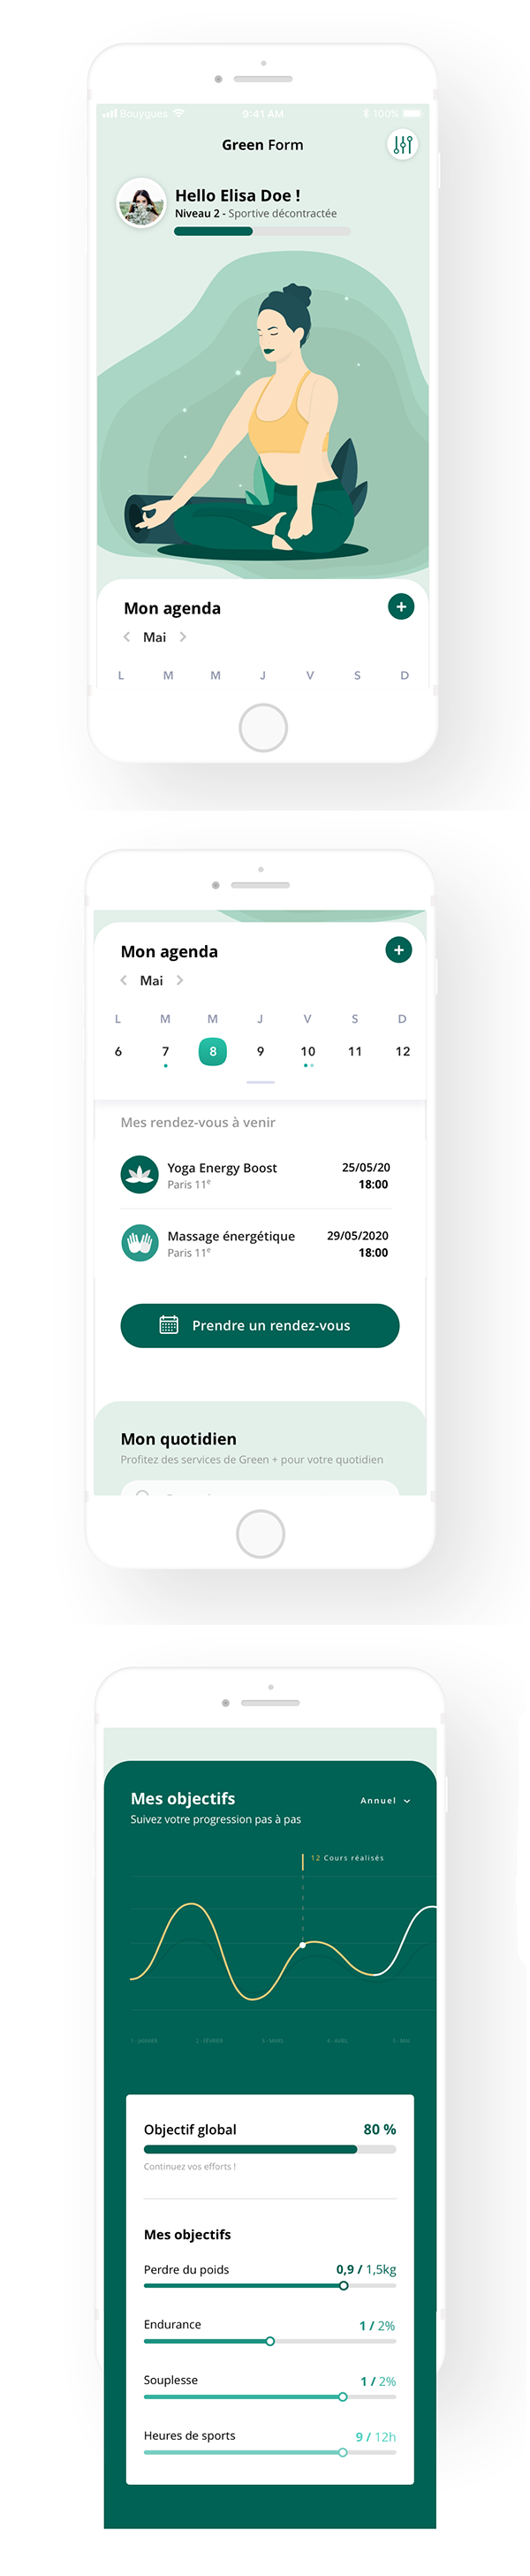 Modern Mobile App UI Design with Amazing UX - 23